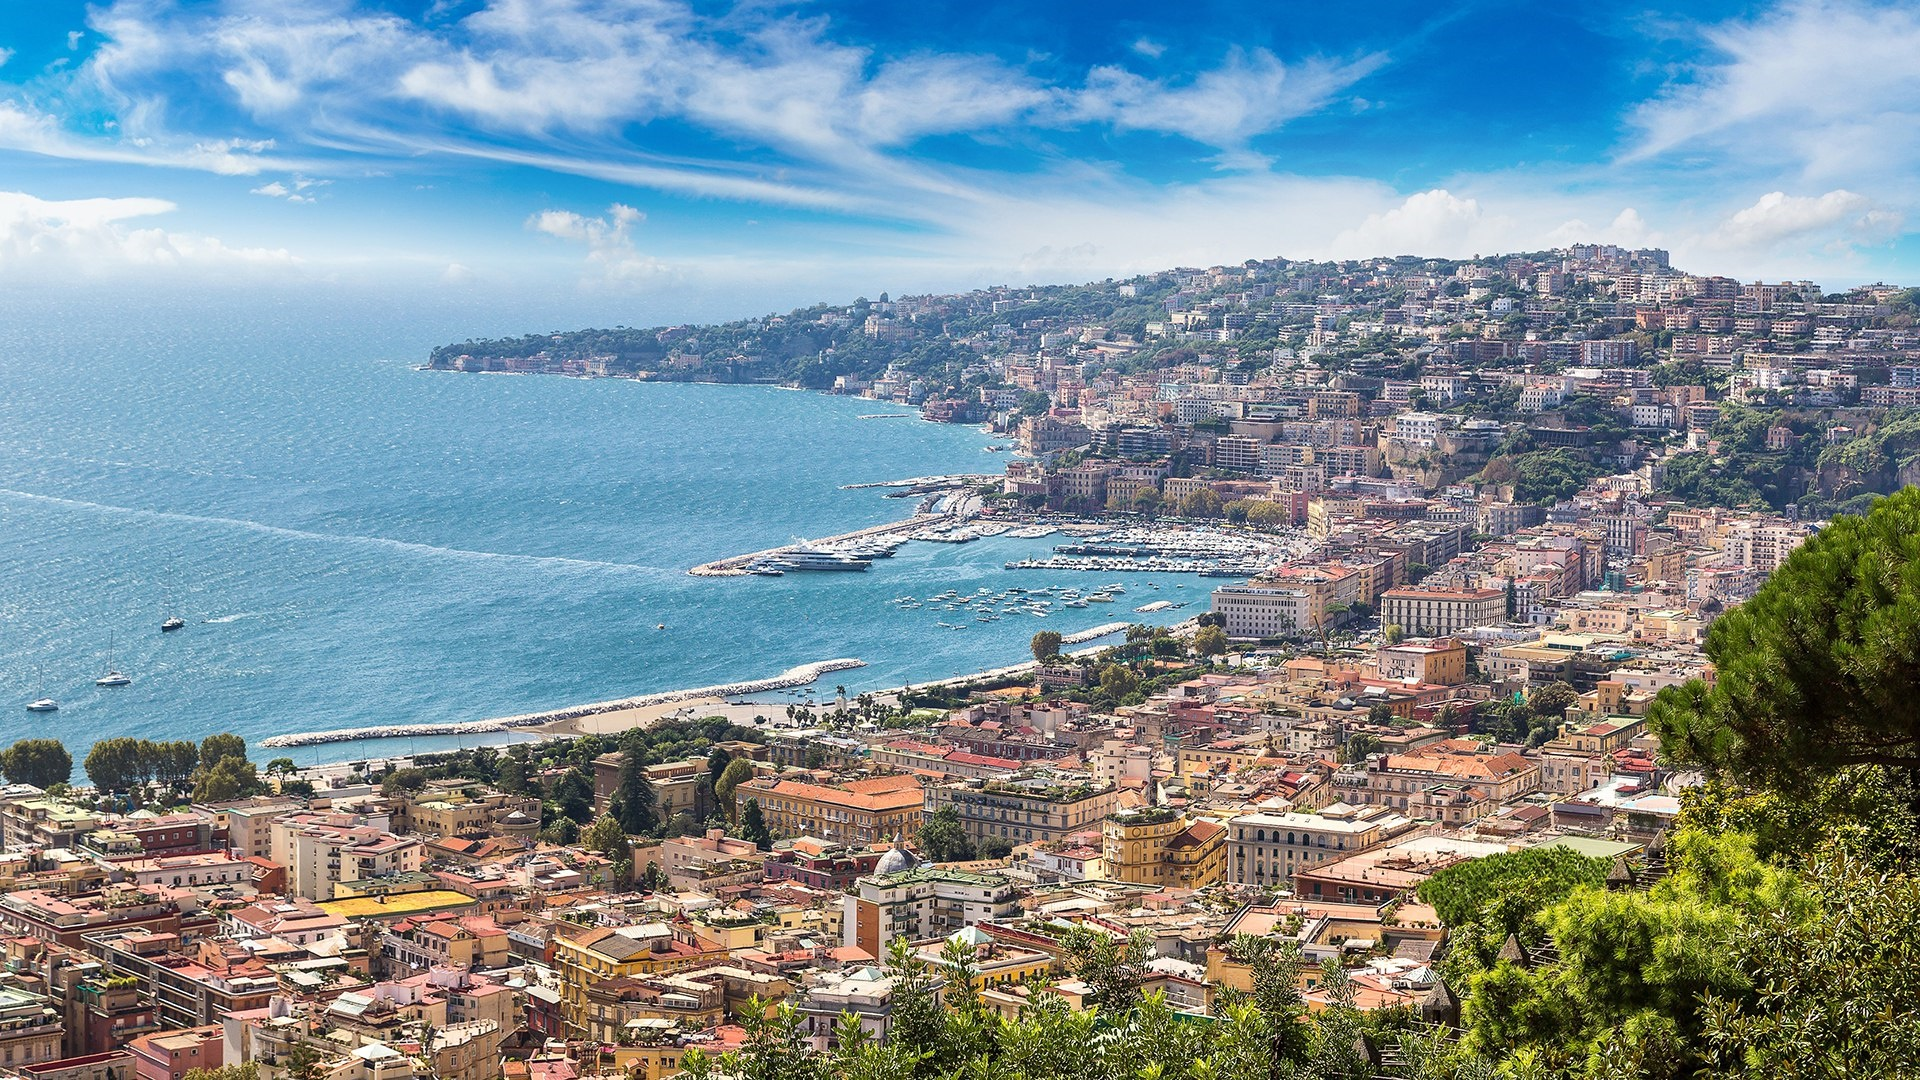 Gulf of Naples, Italy wallpaper